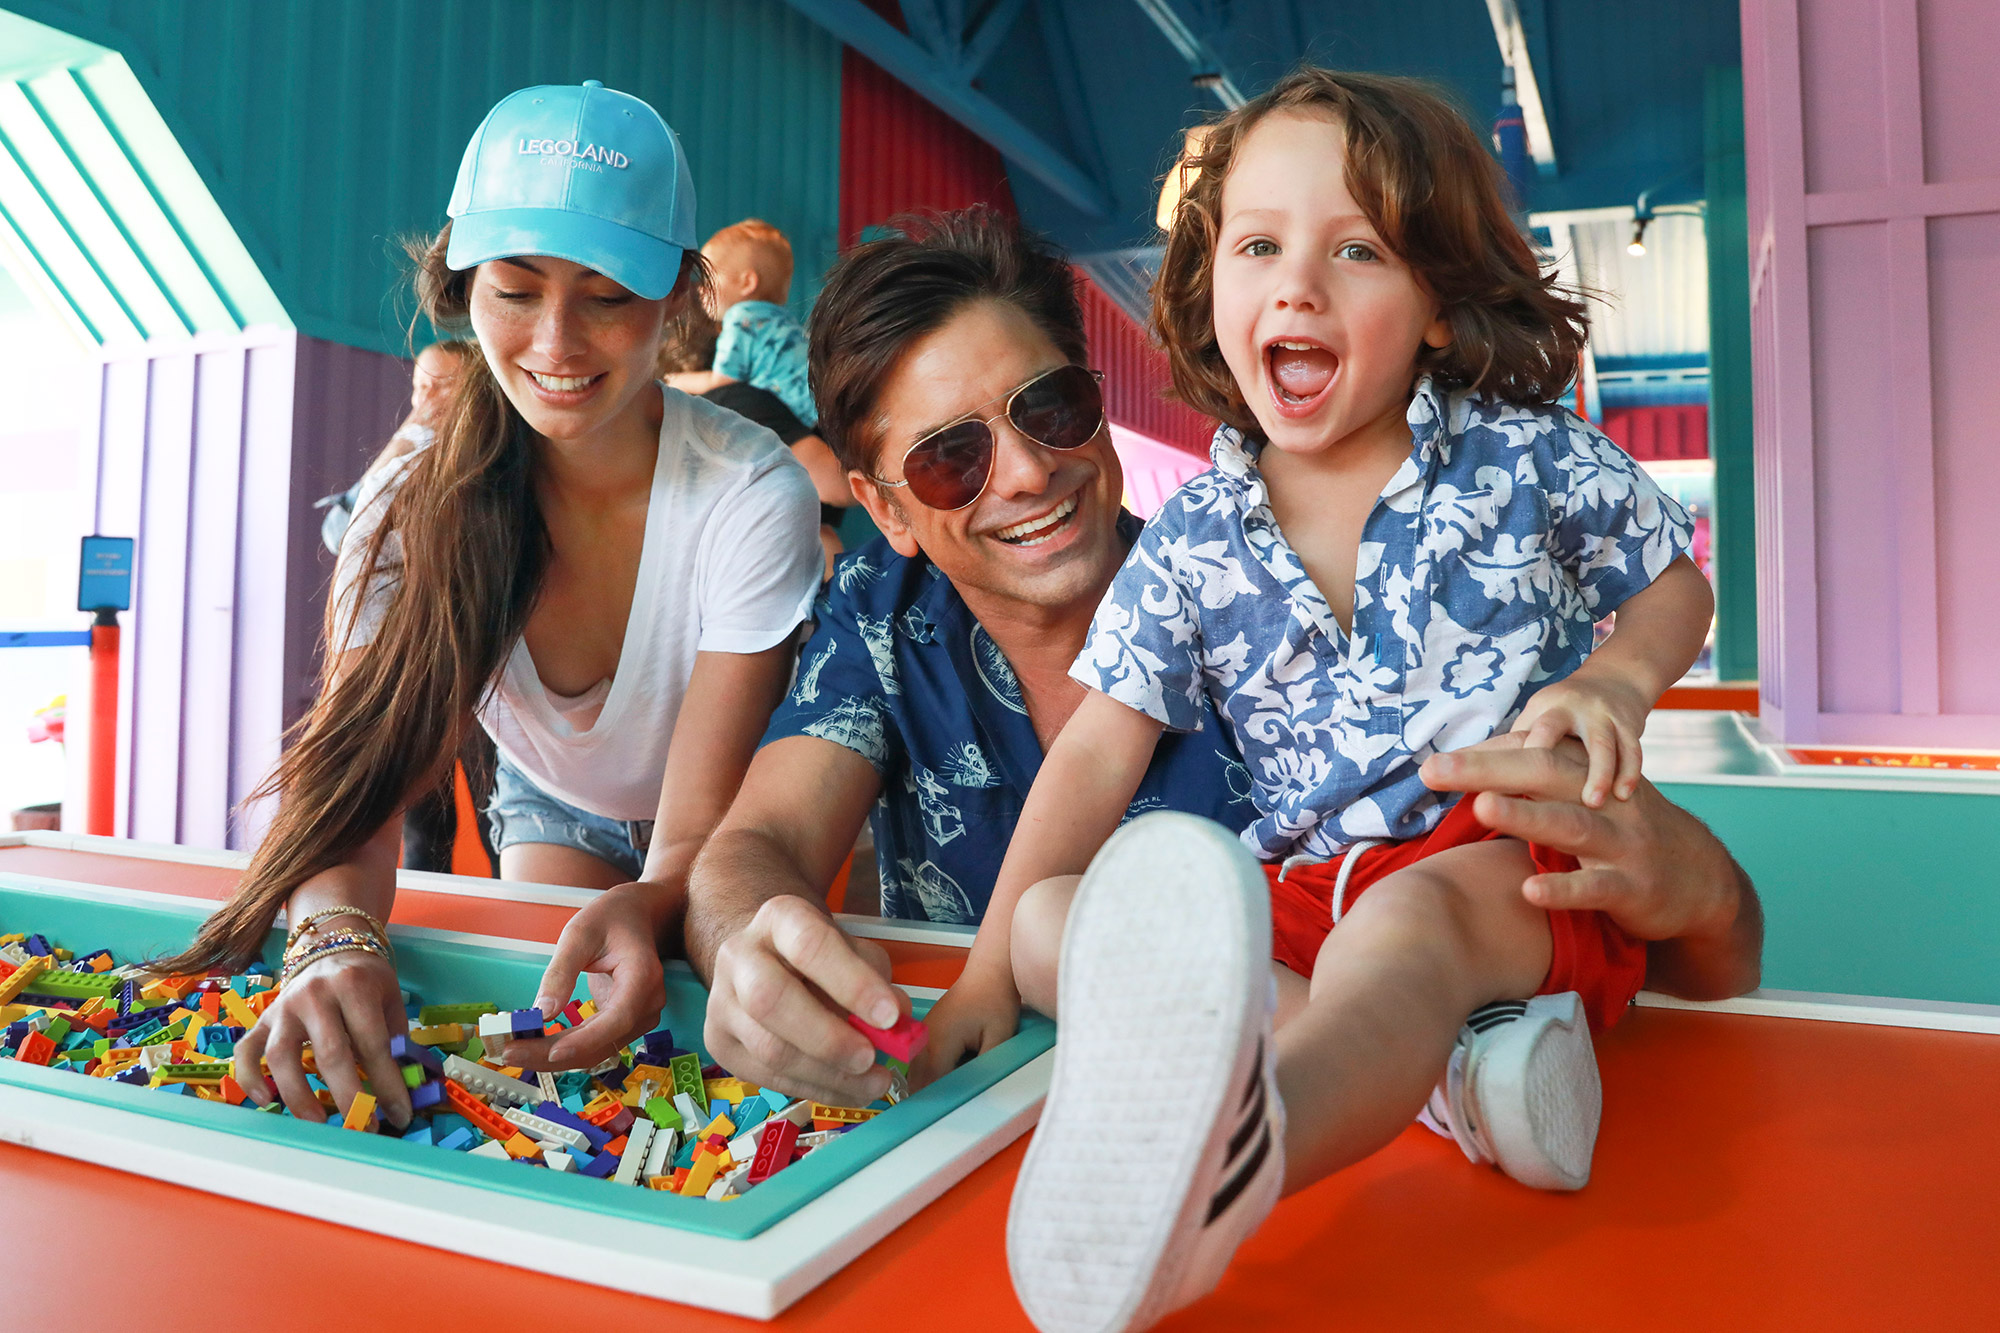 John Stamos and family on a visit to Legoland California on Saturday, June 5, 2021 in Carlsbad, CA.